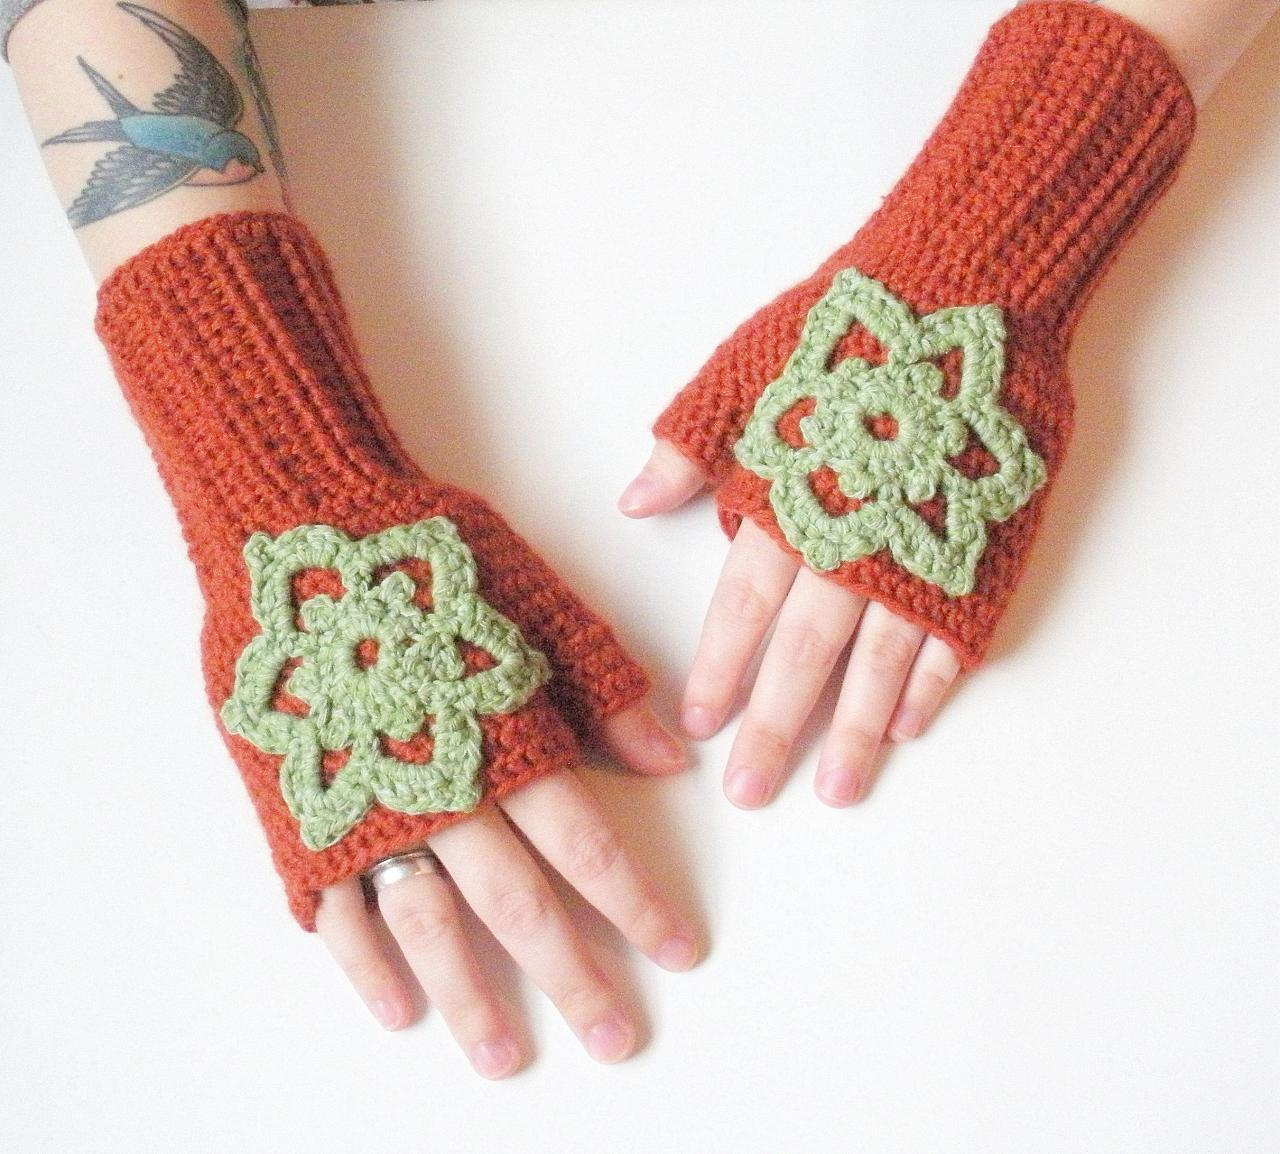 Wool Blend Crochet Fingerless Gloves Wrist Warmers in Paprika with embellishments, ready to ship.